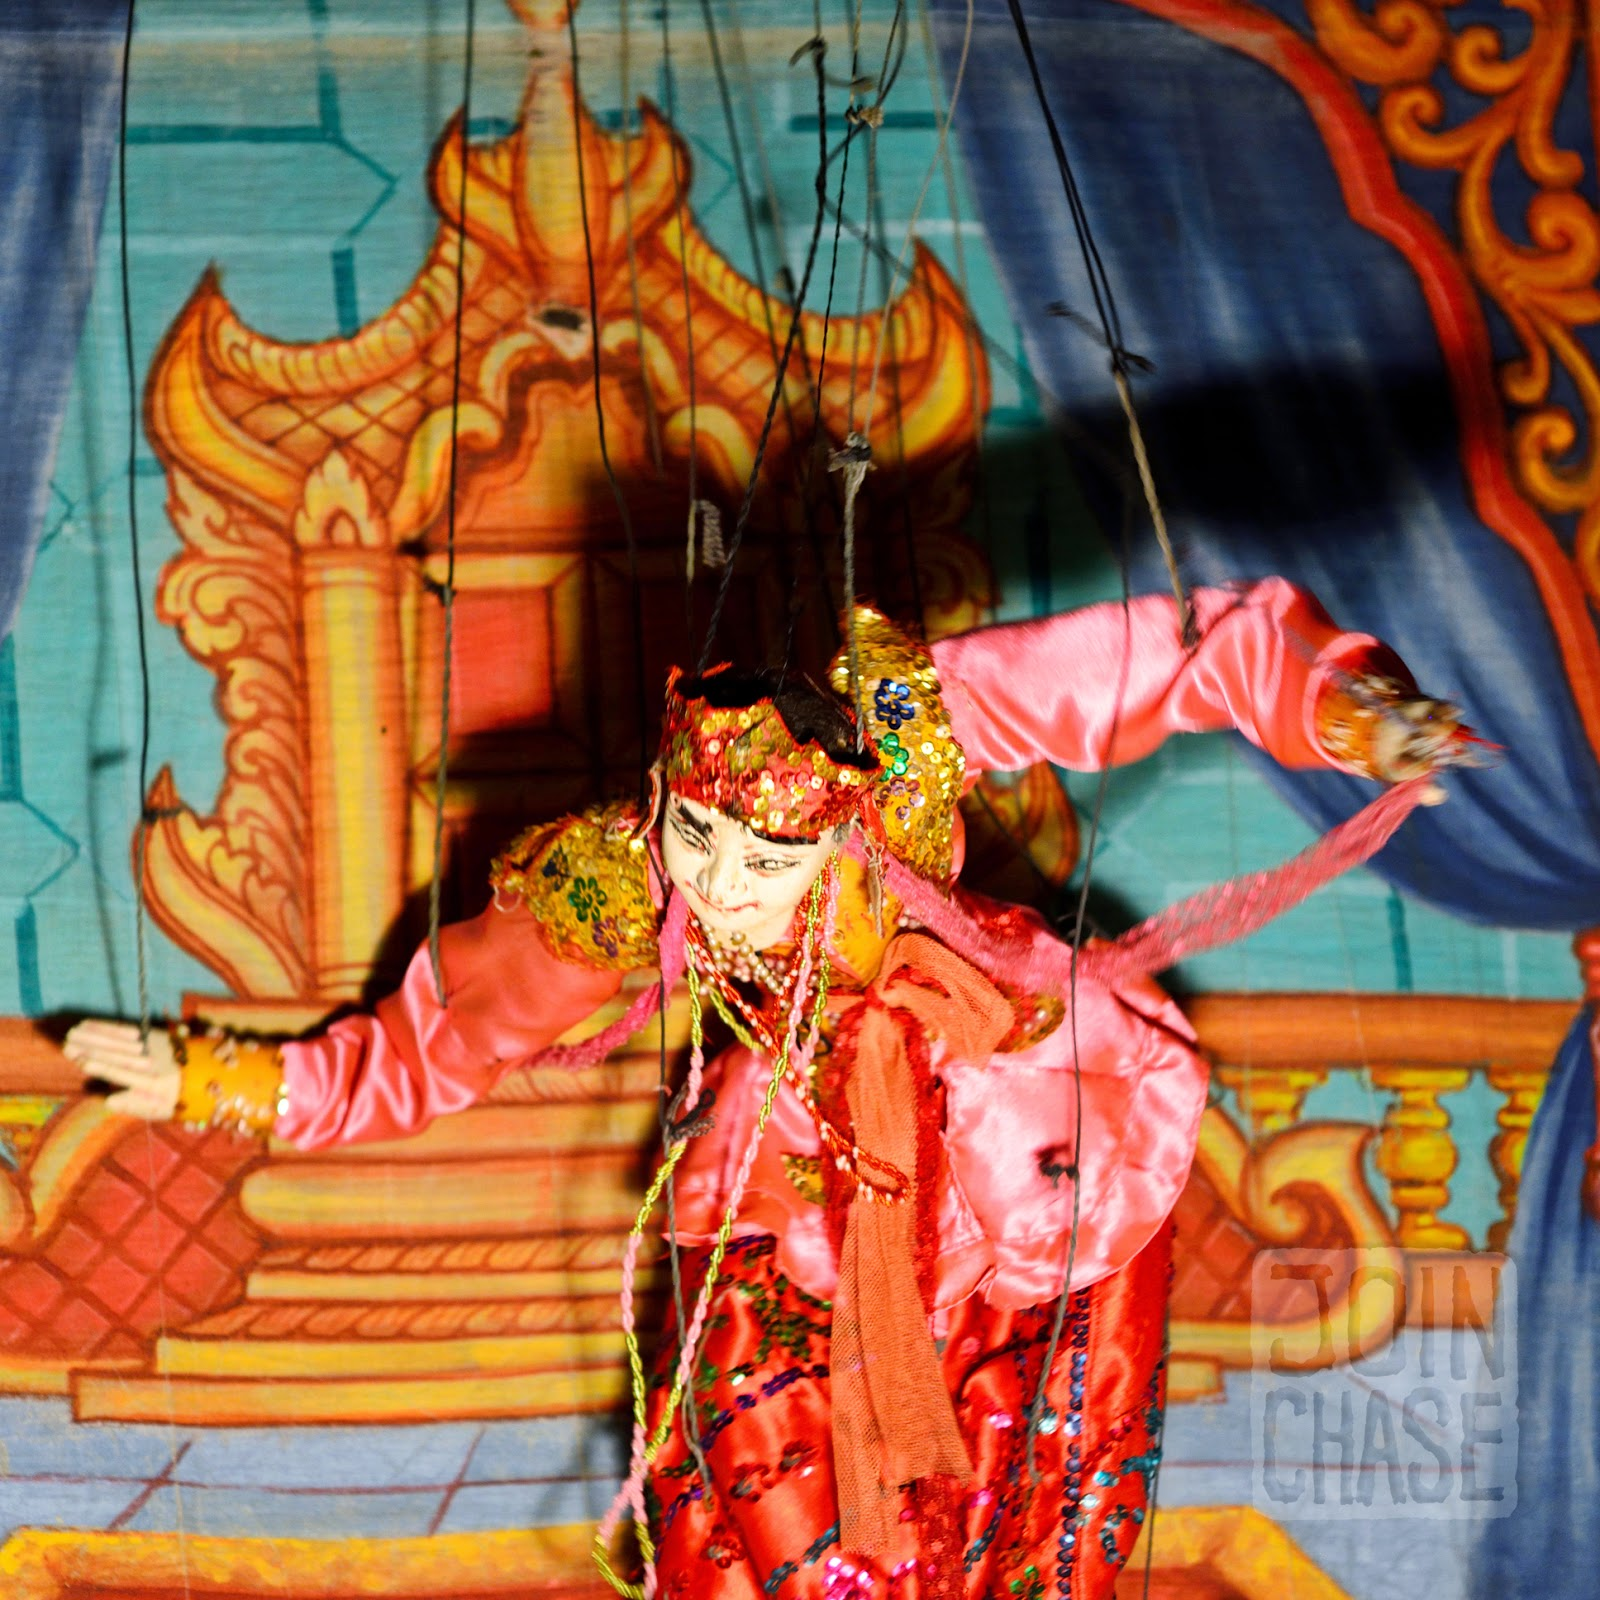 A puppet from a traditional puppet show at Nanda Restaurant in Bagan, Myanmar.